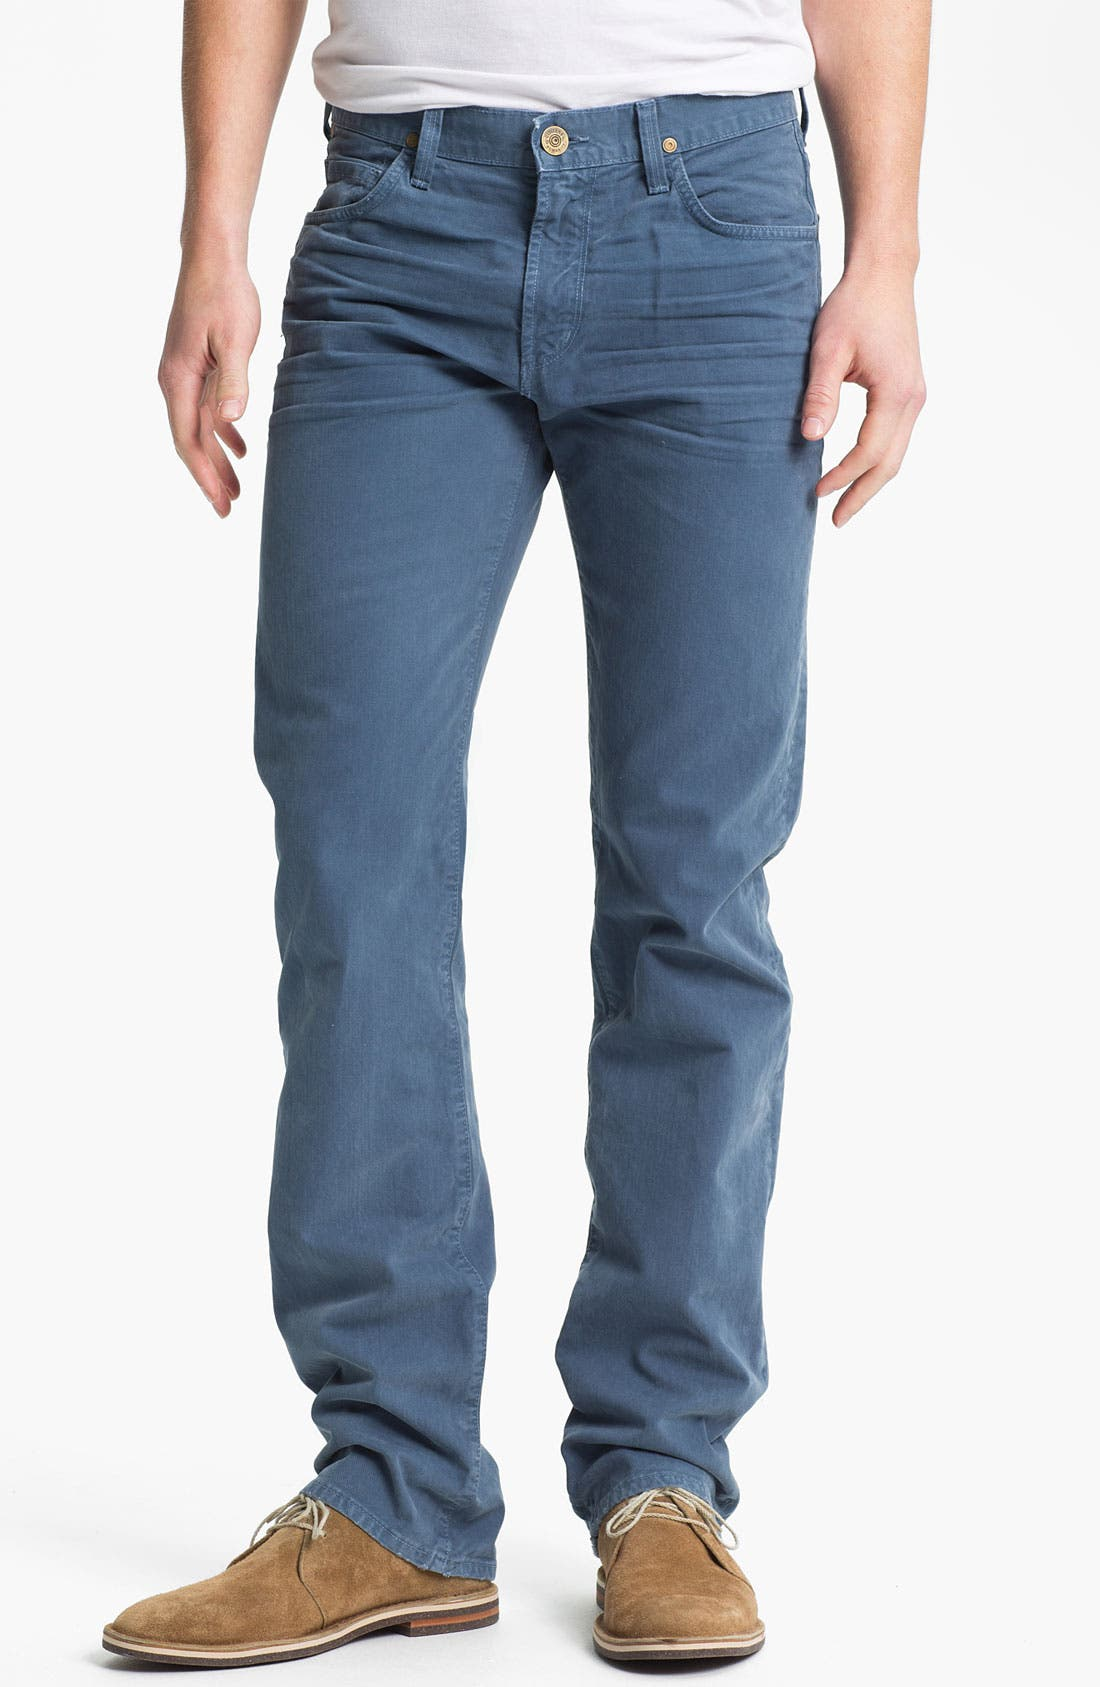 Main Image - Citizens of Humanity 'Sid' Straight Leg Jeans (Spruce) (Online Only)